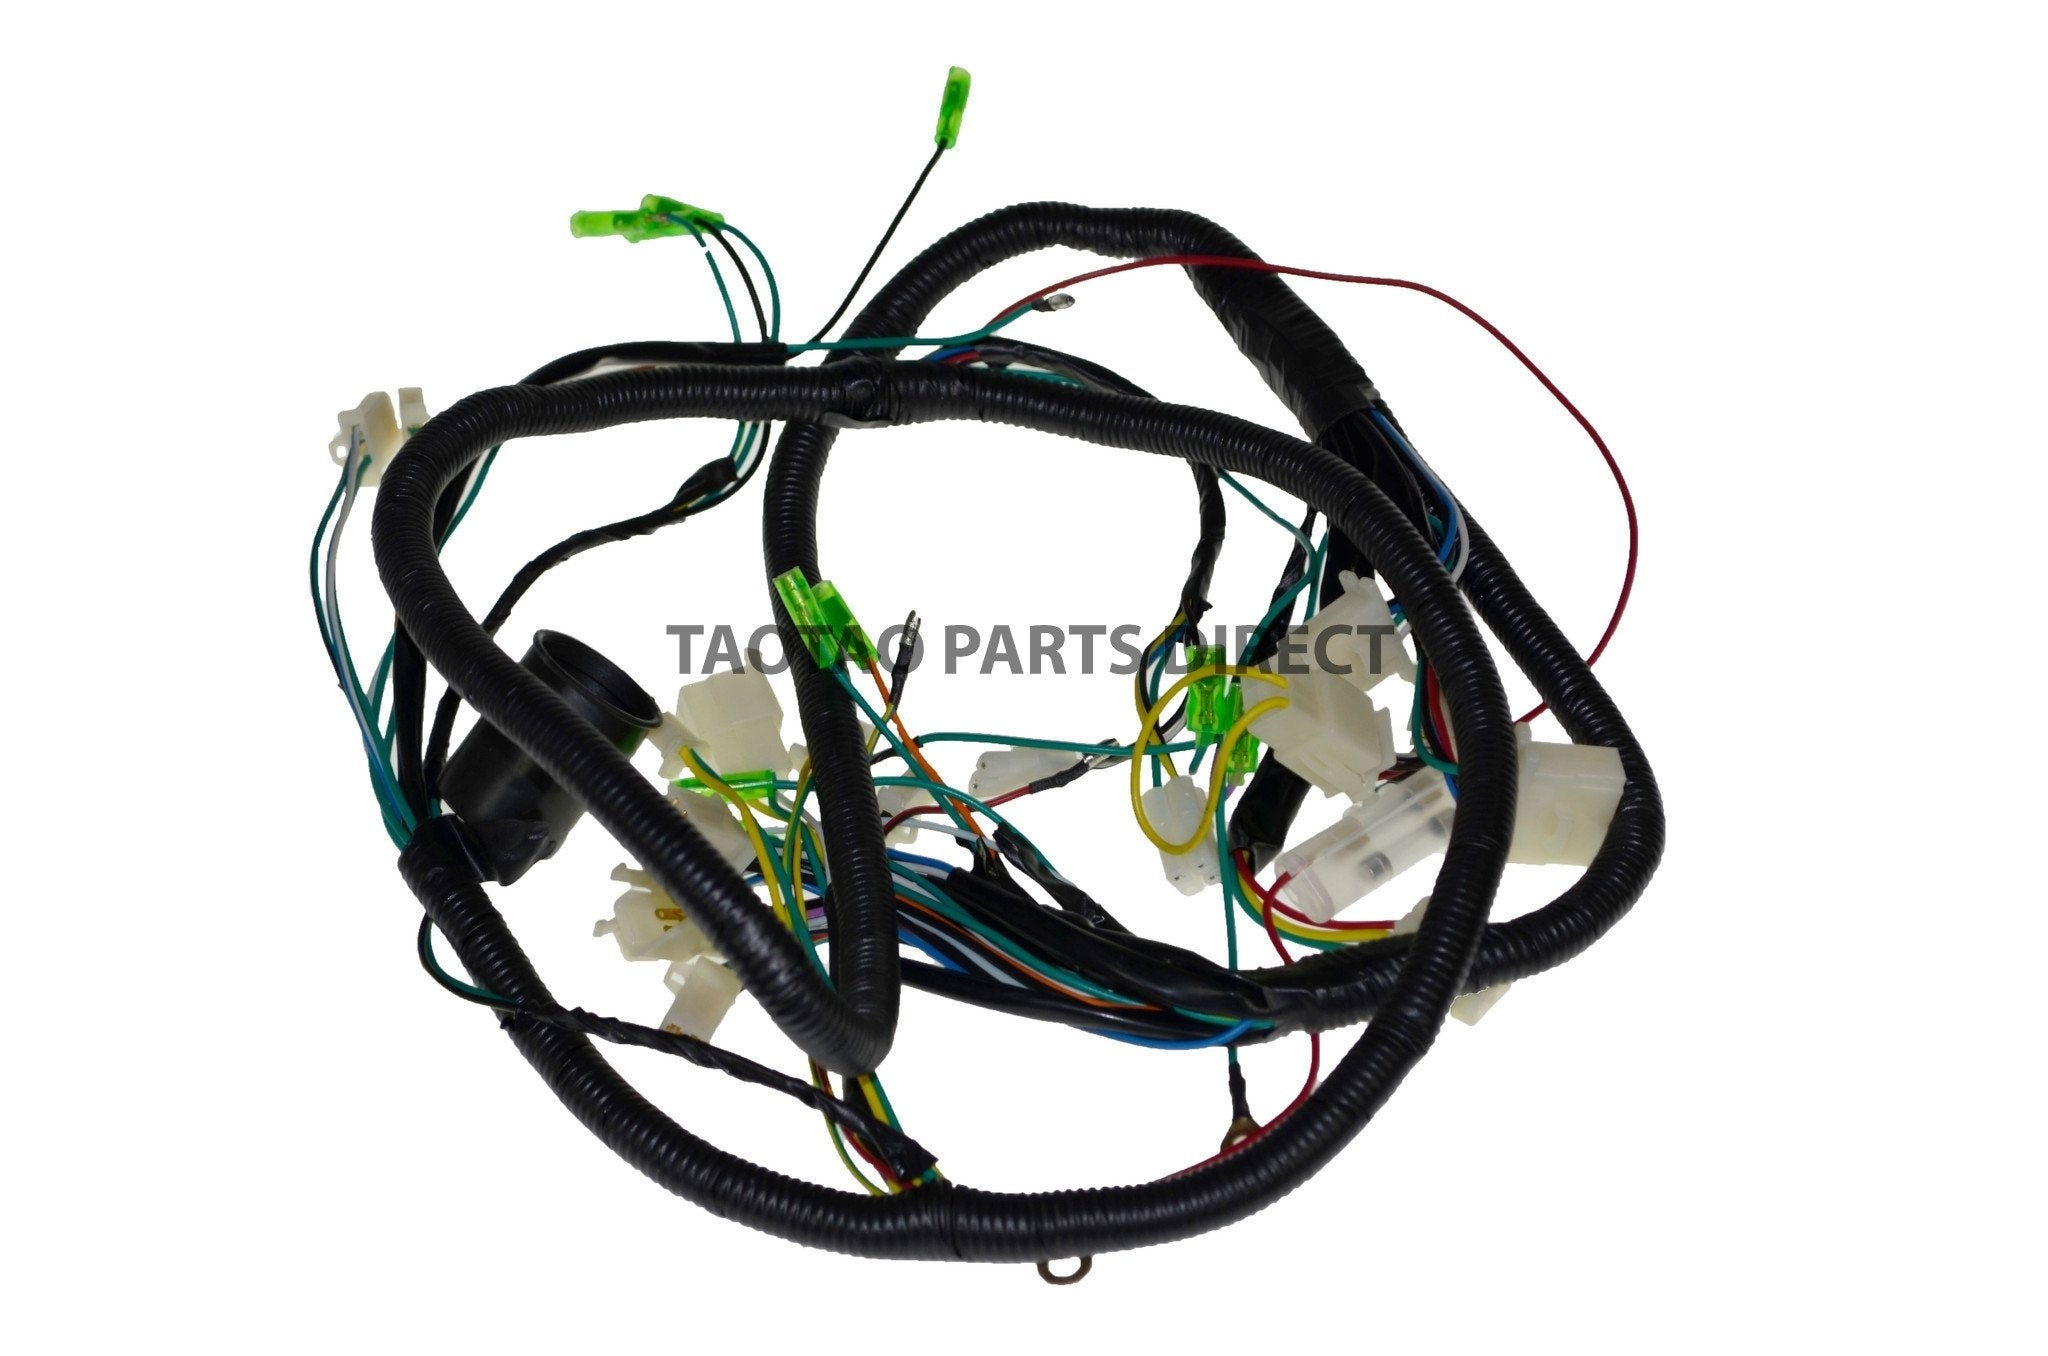 Thunder 50 Wire Harness Taotao Parts Direct Electrical Scooter